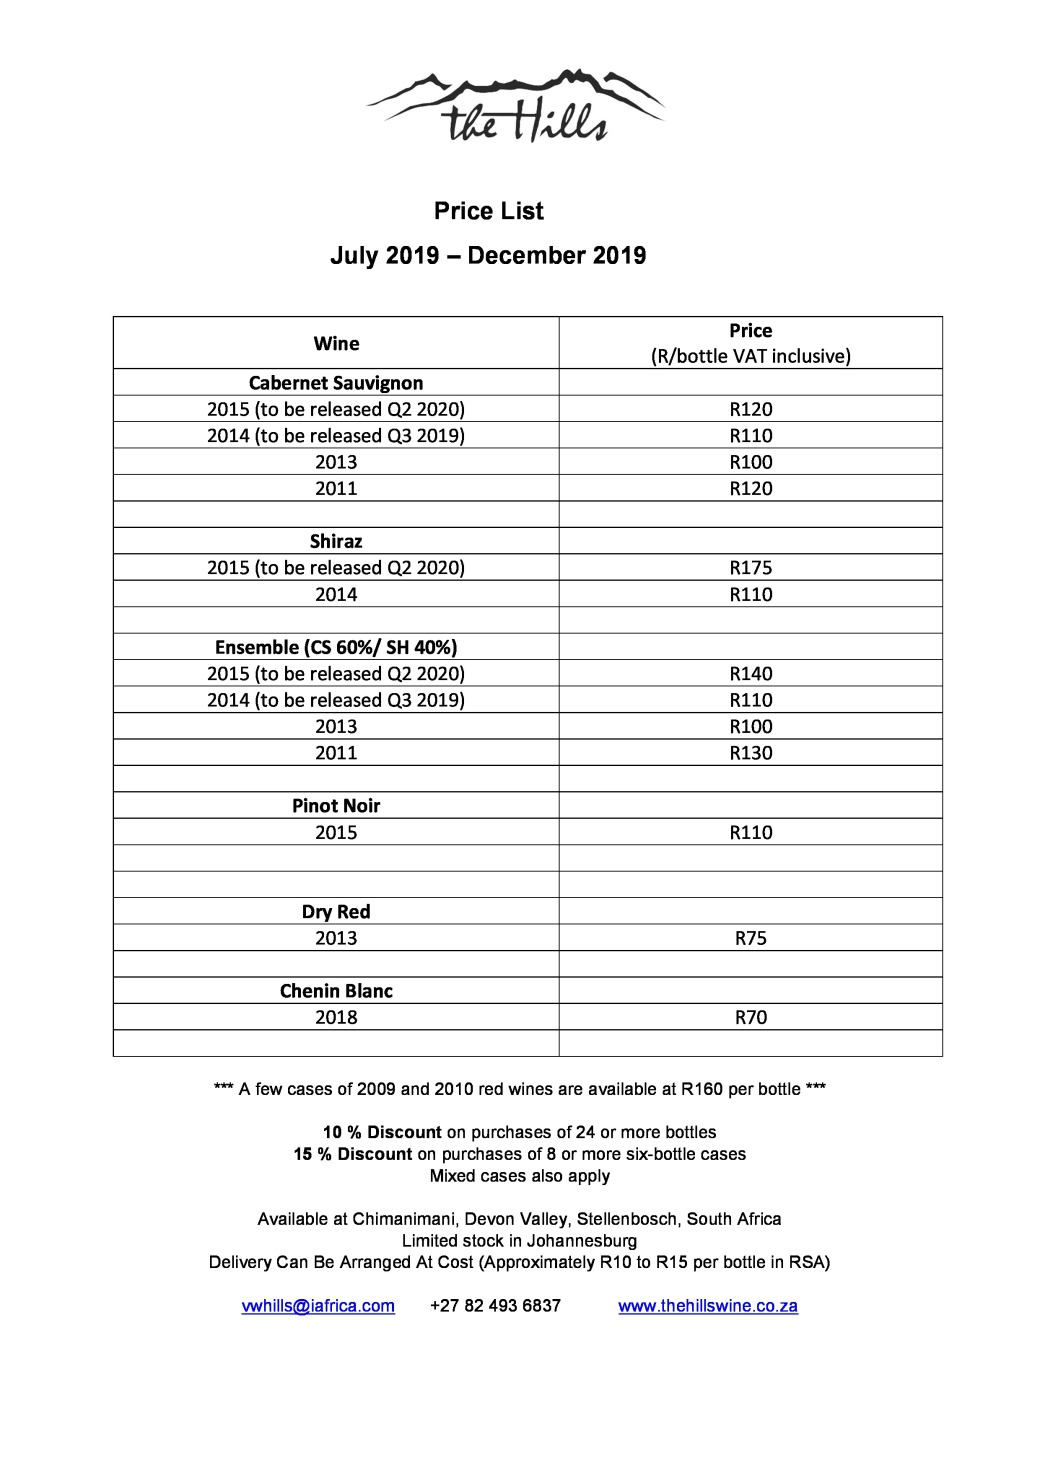 The Hills Price List 2019 H2_v02-page-0